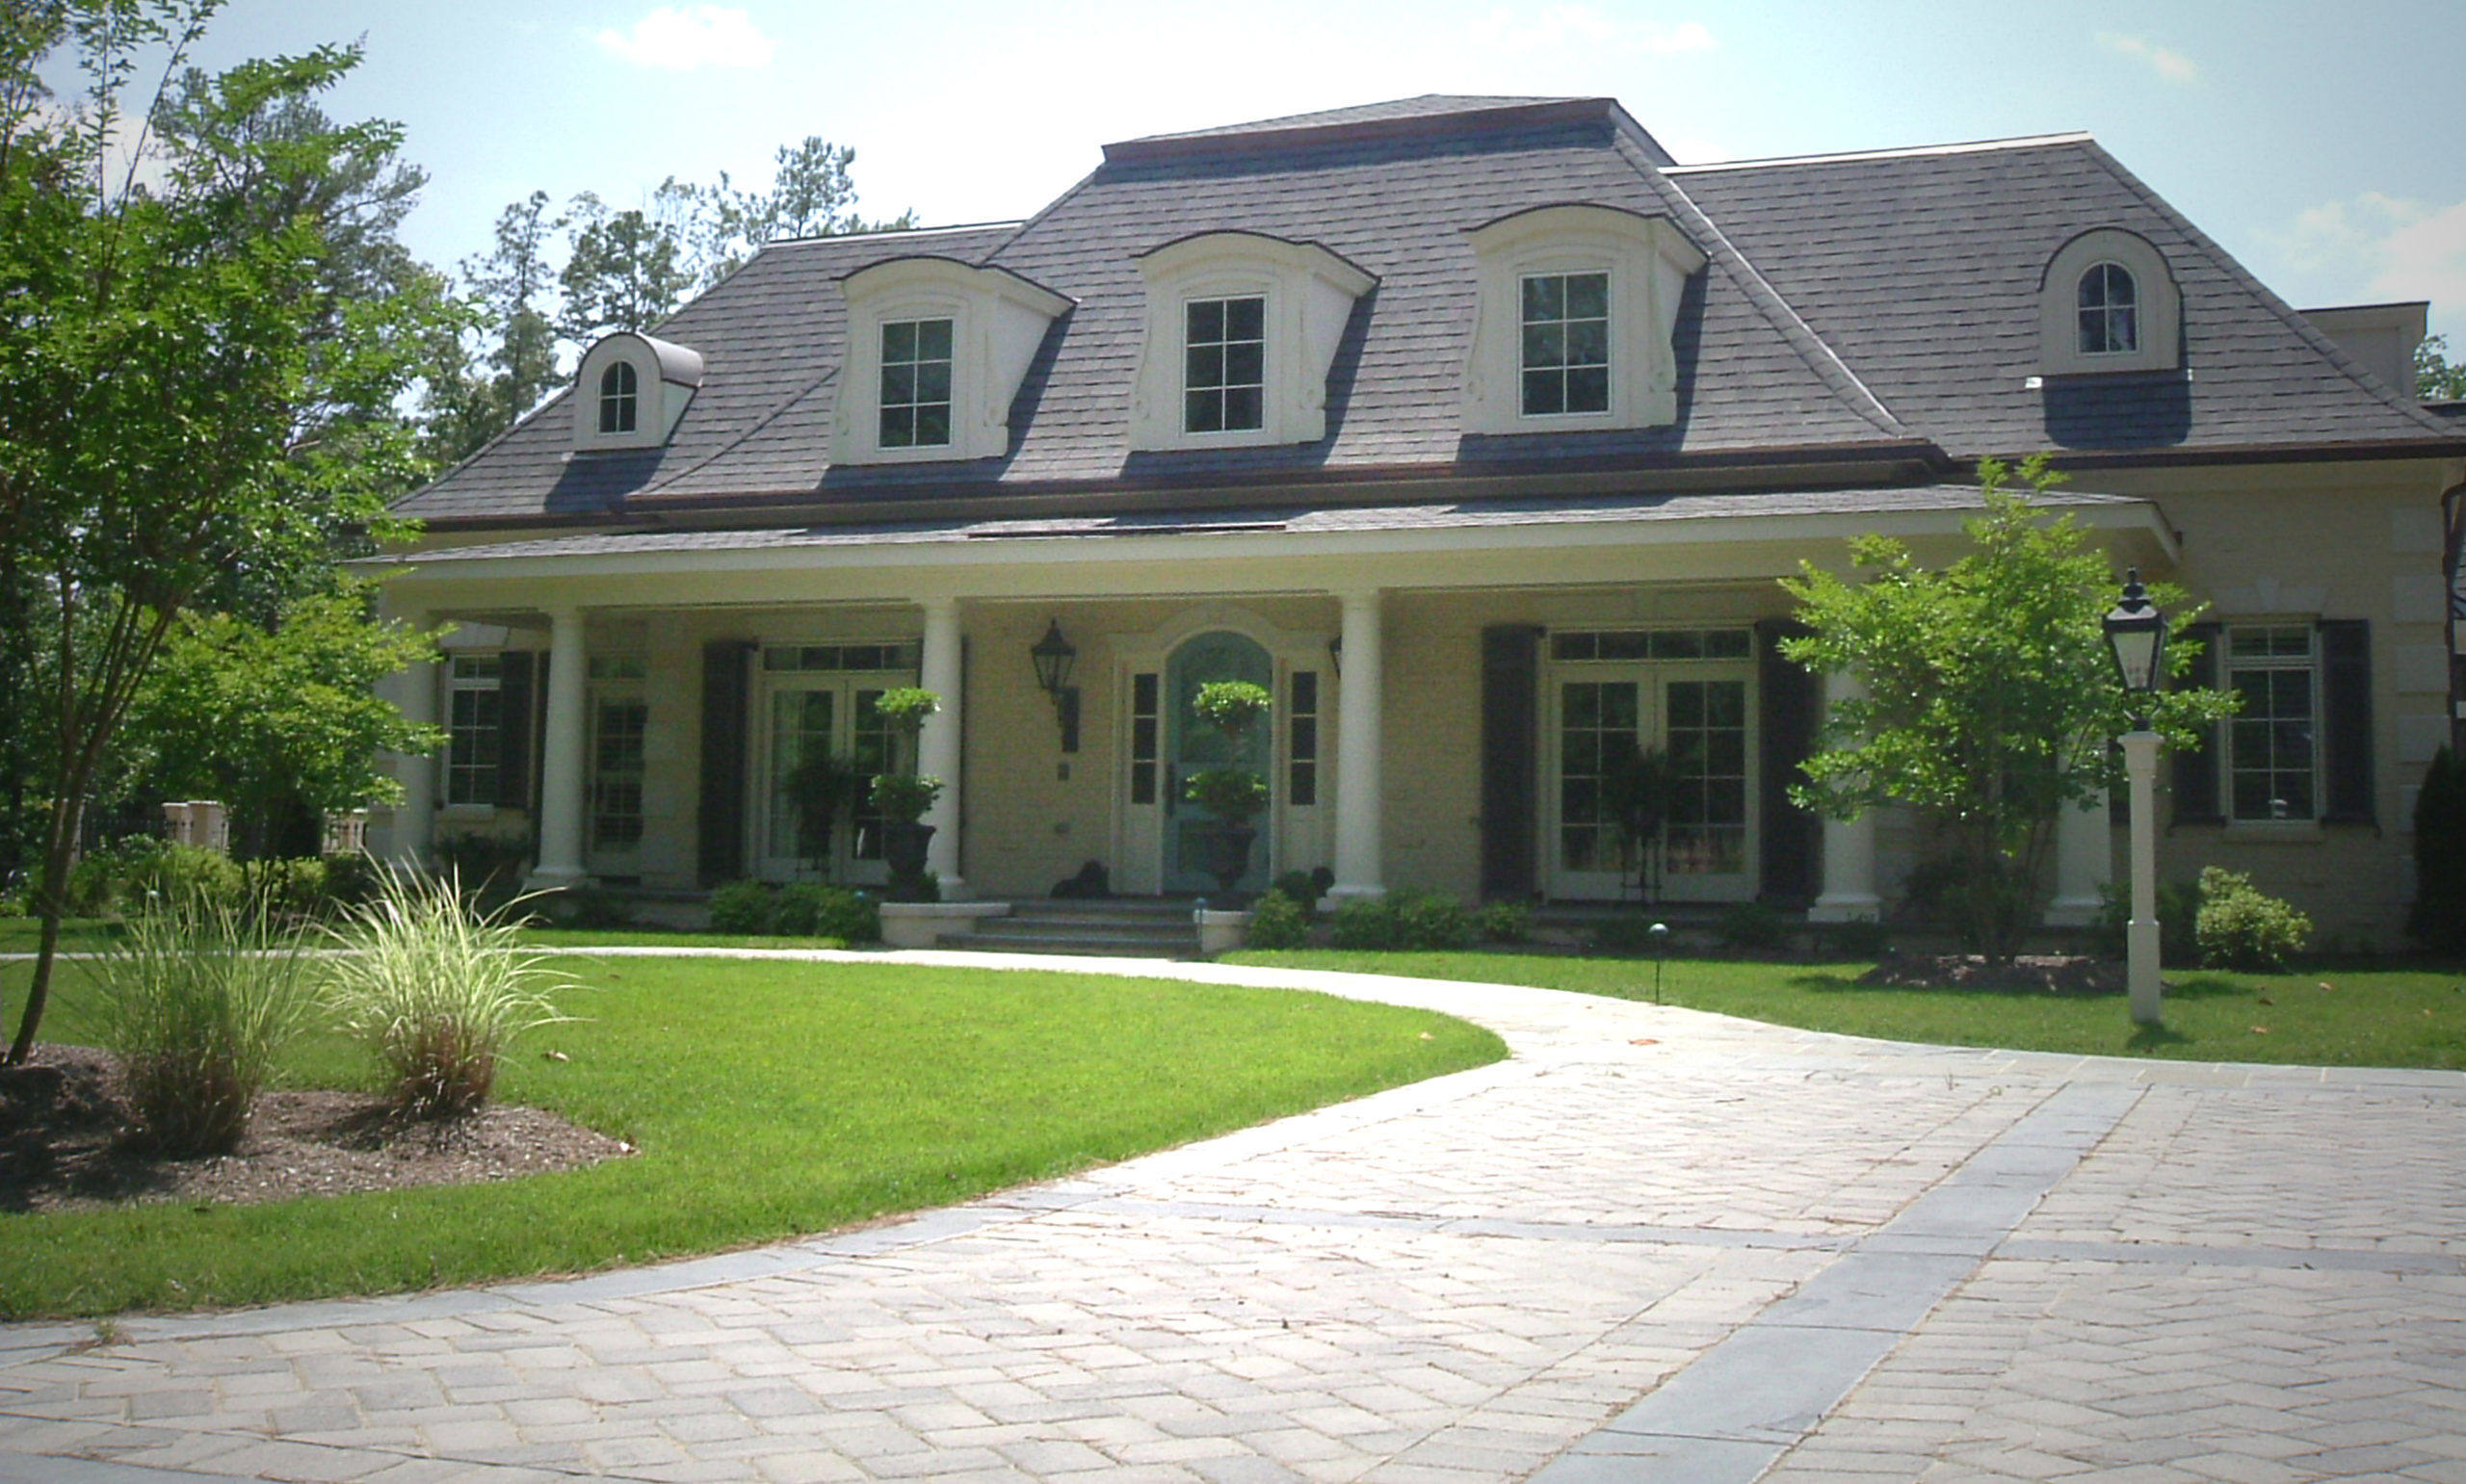 Exterior photo of the French Country Manor custom home project.